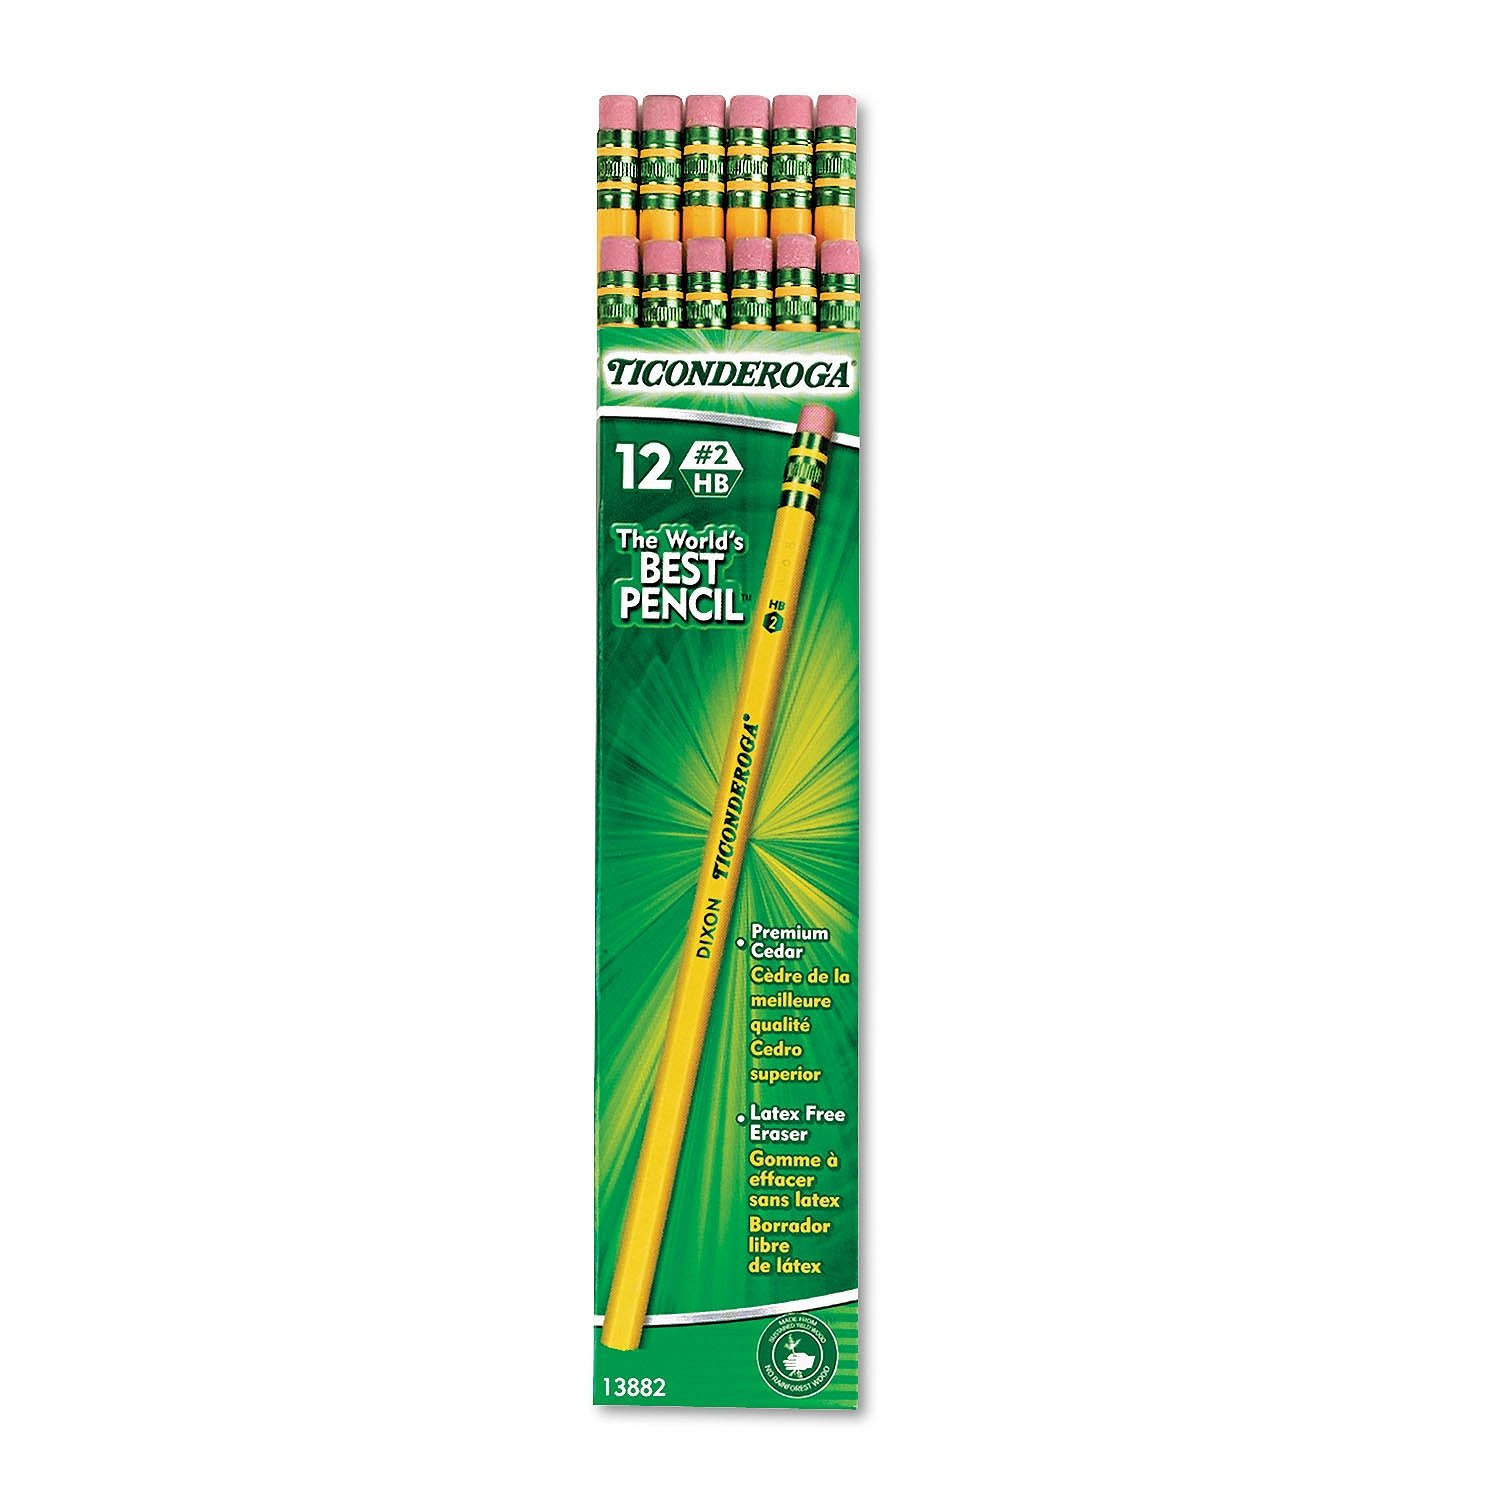 Dixon Ticonderoga Woodcase Pencil, HB #2, Yellow Barrel, 96/Pack (5 Pack) by Dixon (Image #3)